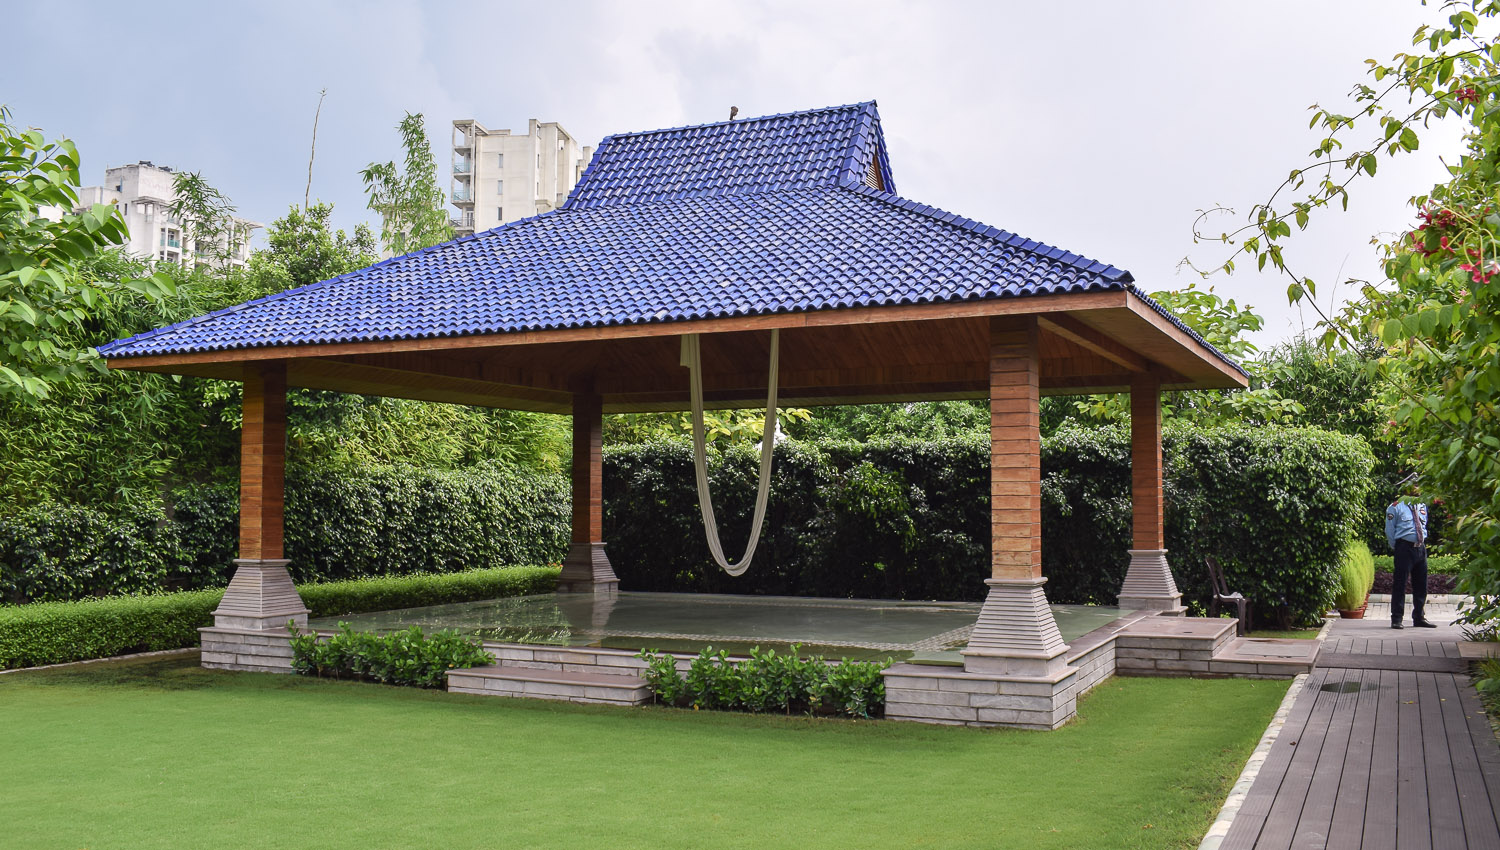 The hanging yoga pavillion in the garden. Image:  © Ambica Gulati